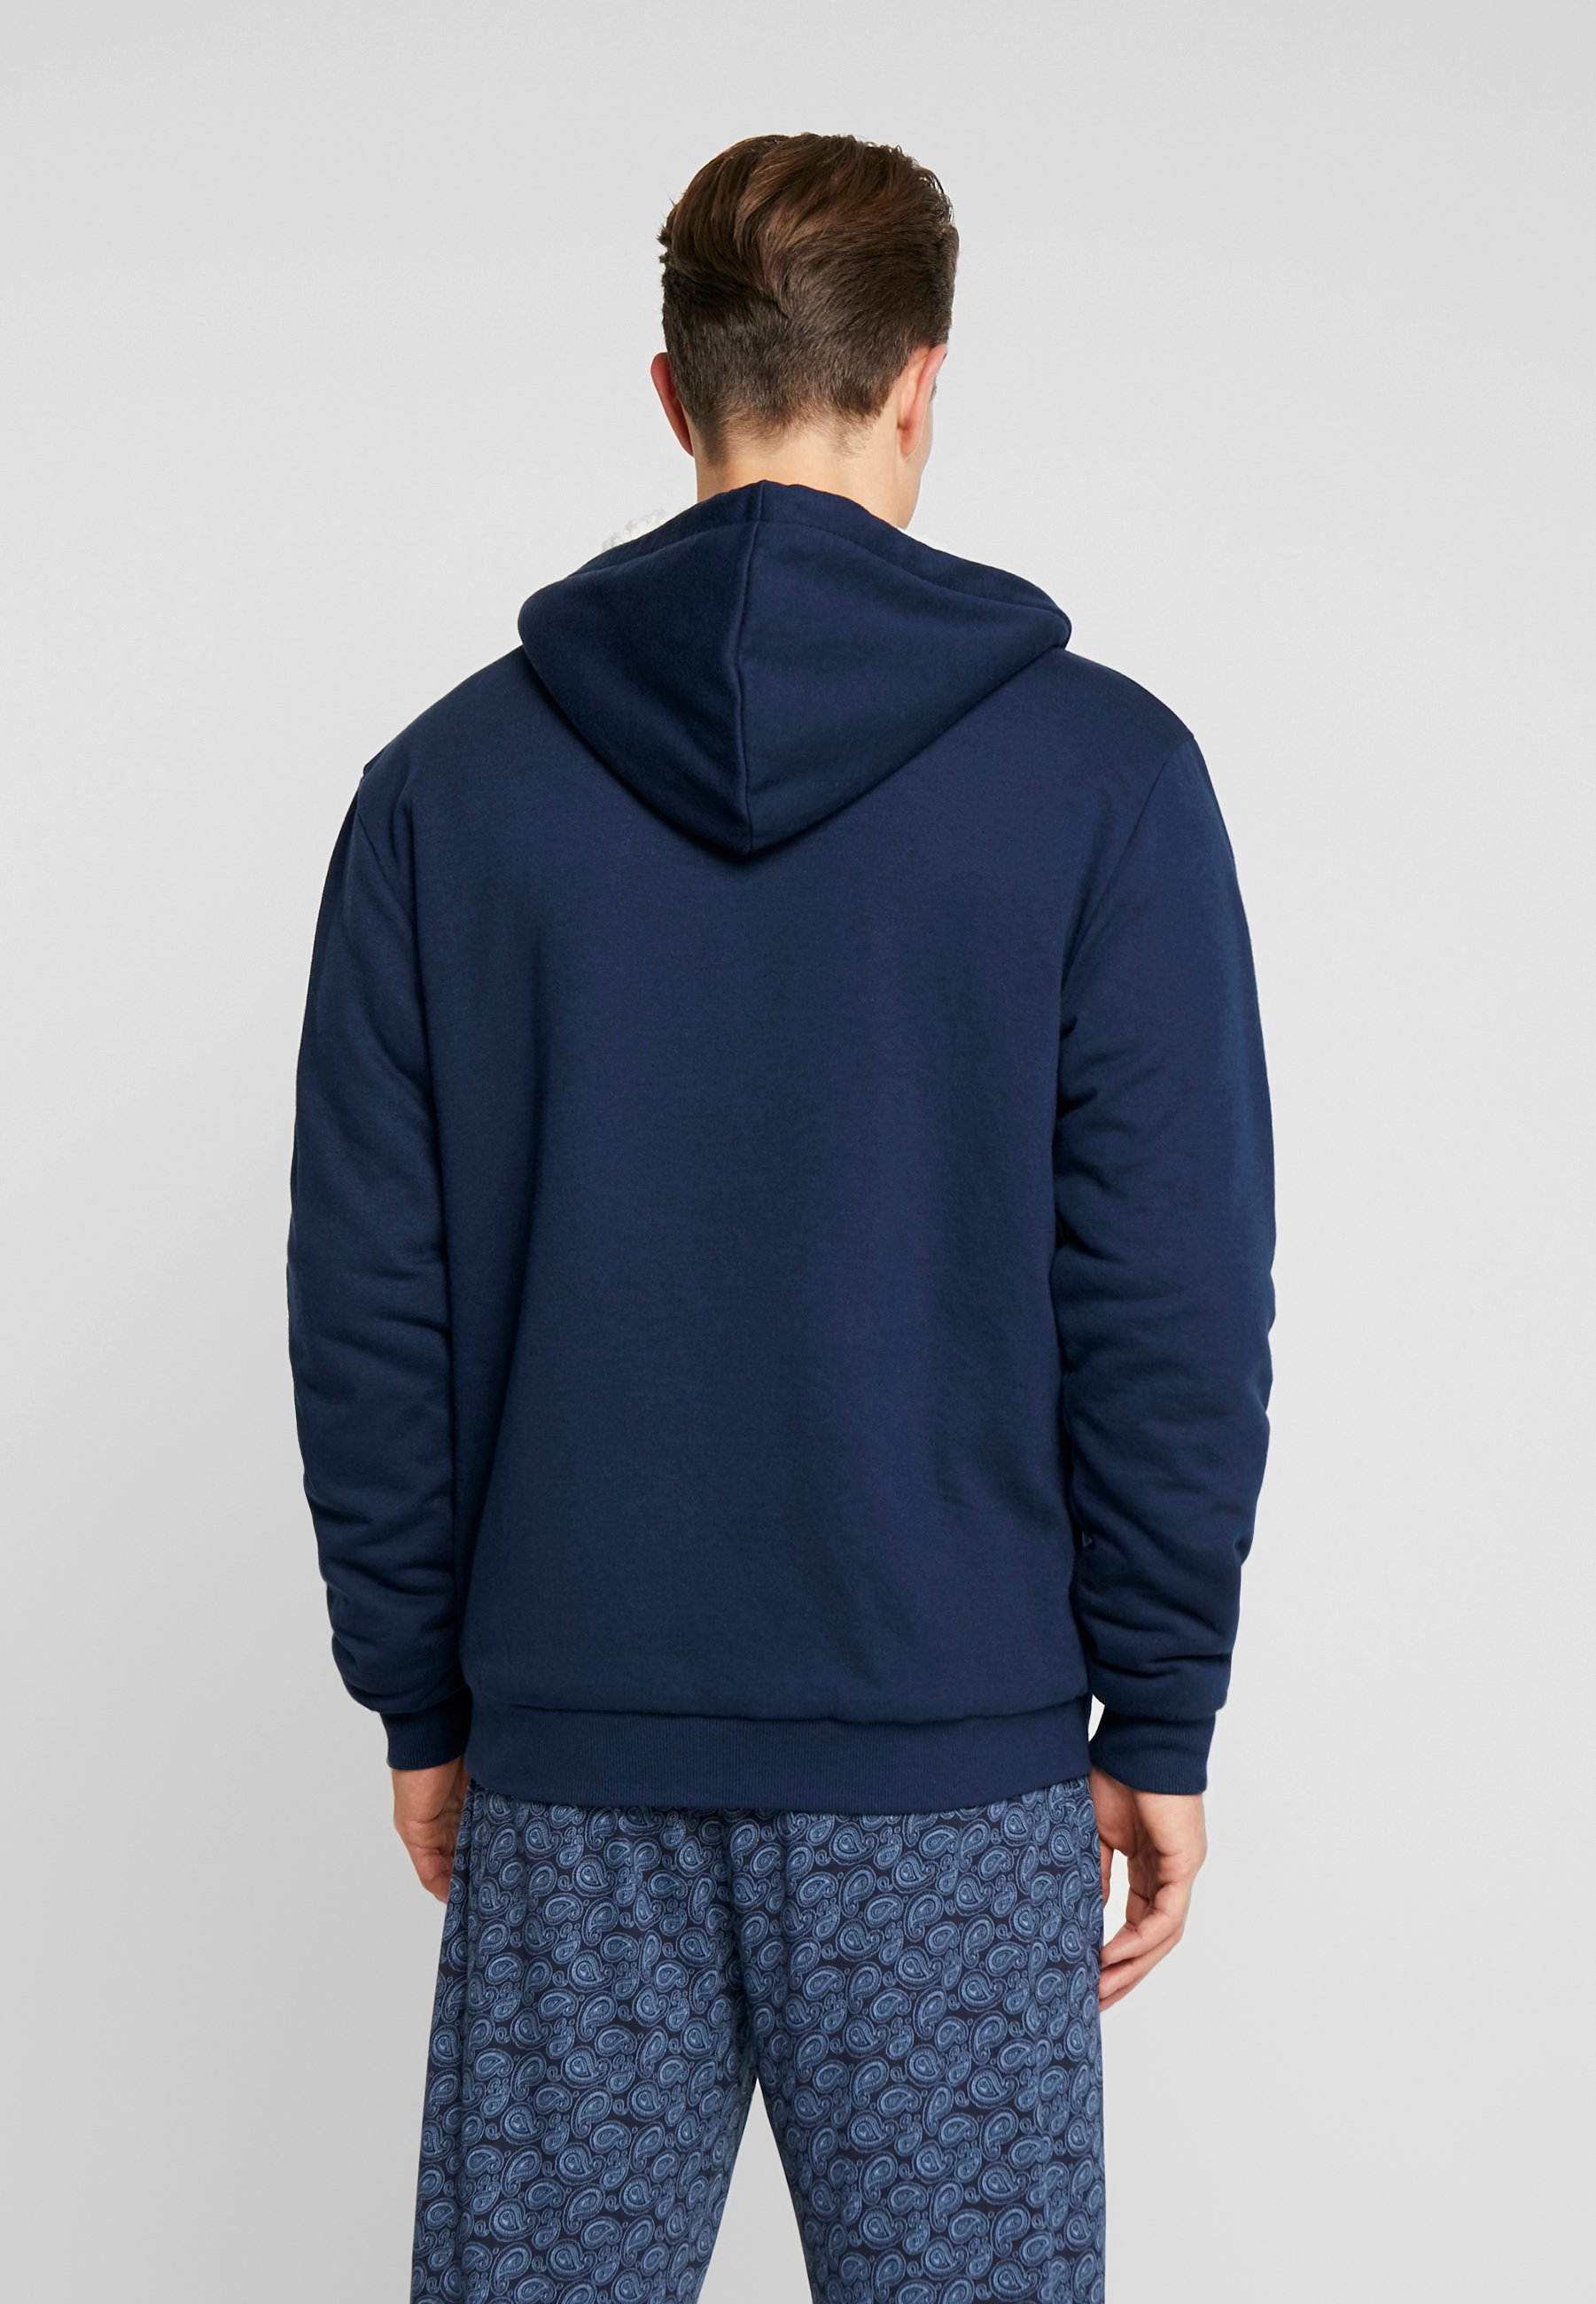 Veste Blue One Sweat Pier En ZippéeDark IWEH9D2Y